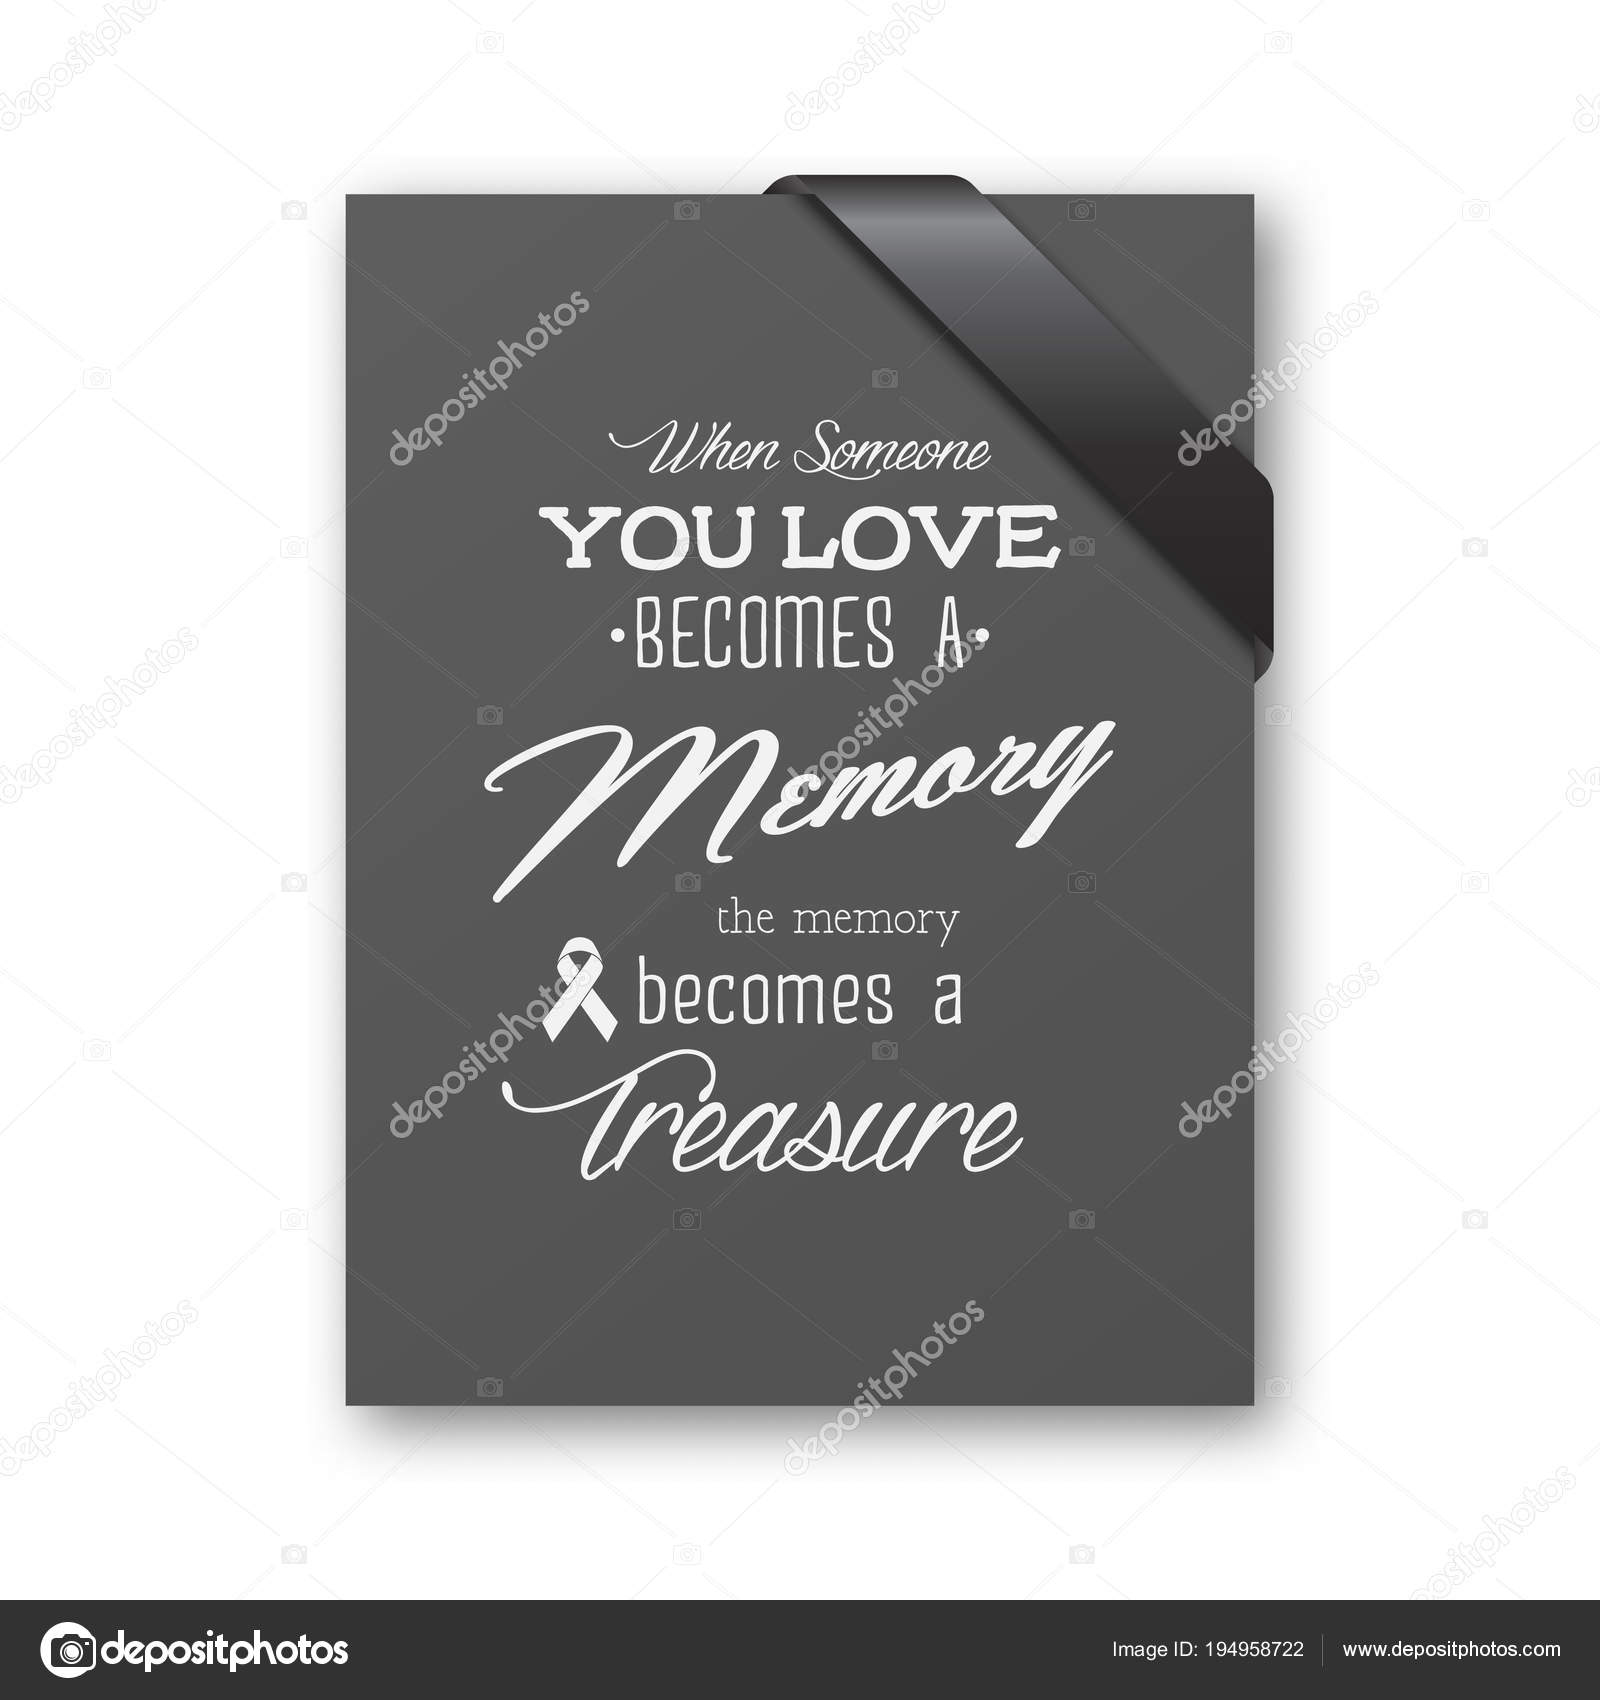 When someone you love becomes a memory the memory becomes a treasure when someone you love becomes a memory the memory becomes a treasure quote funeral typographical background black paper card invitation with black silk stopboris Gallery